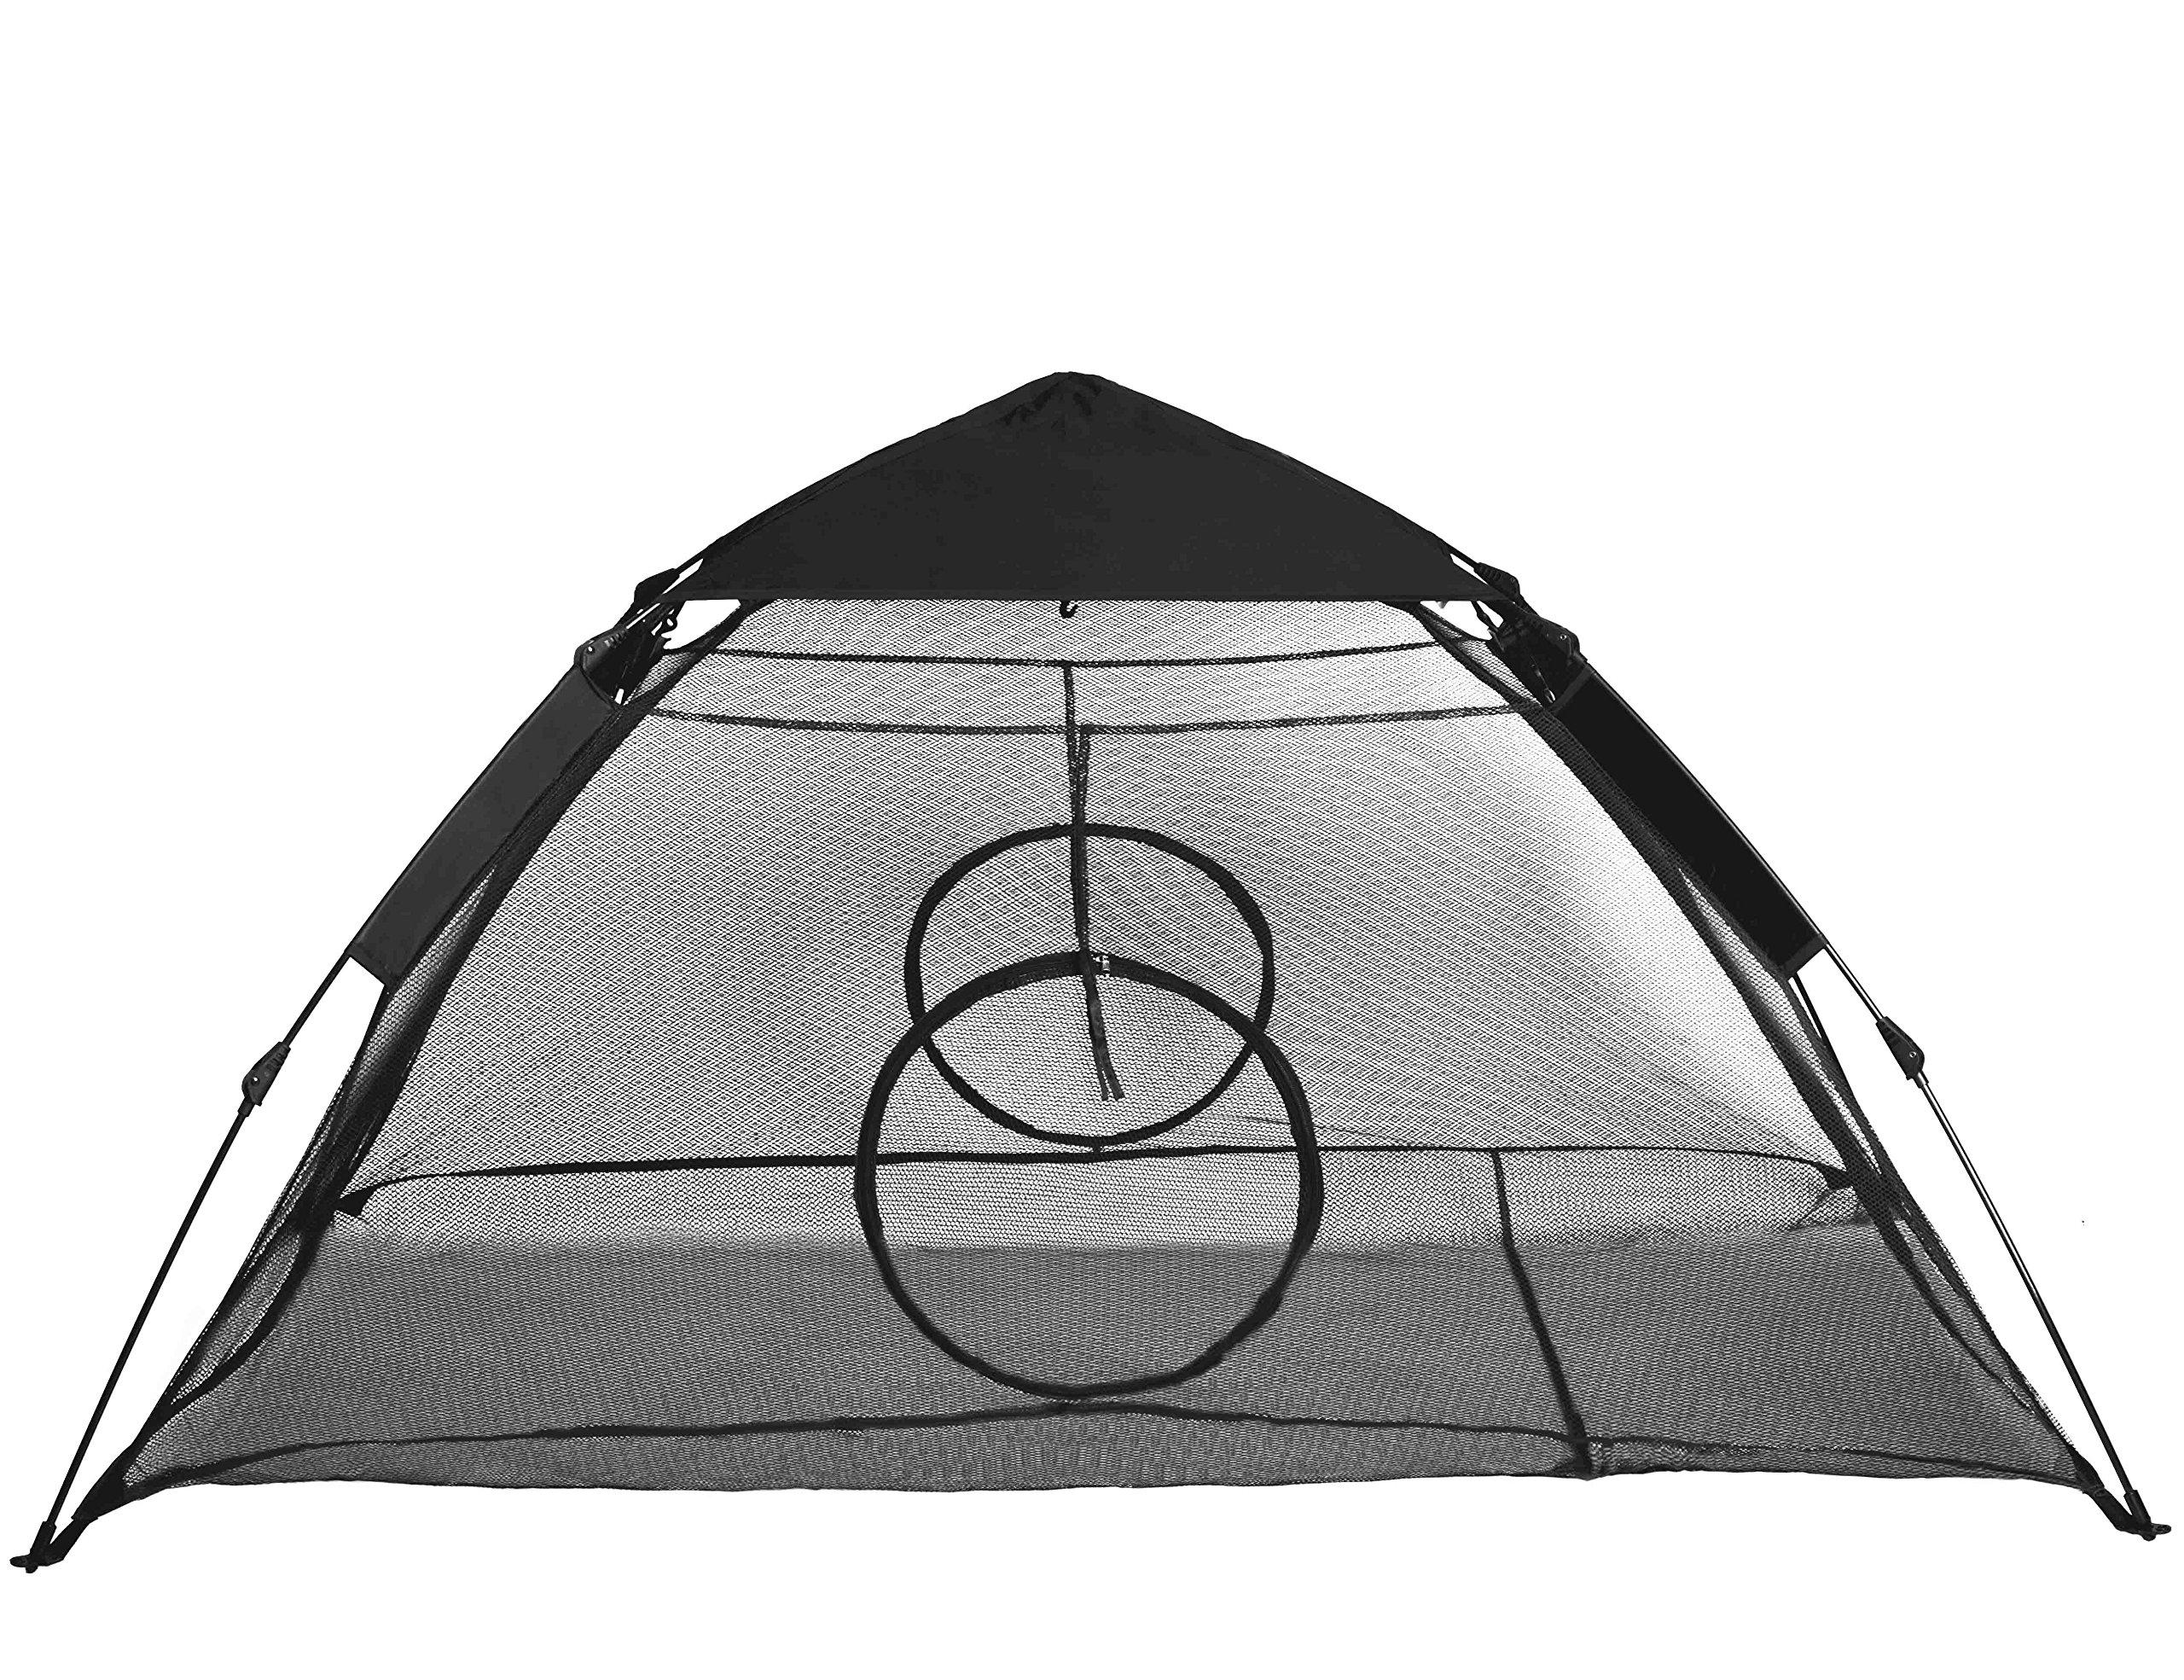 RORAIMA outdoor use Instant Portable Cat Tent Habitat Rain Fly Two Entrance Indoor Cats, Air Ventilate Mesh Fabric Prevent Bugs, Size 75'' L X 60'' W X 36'' H Black